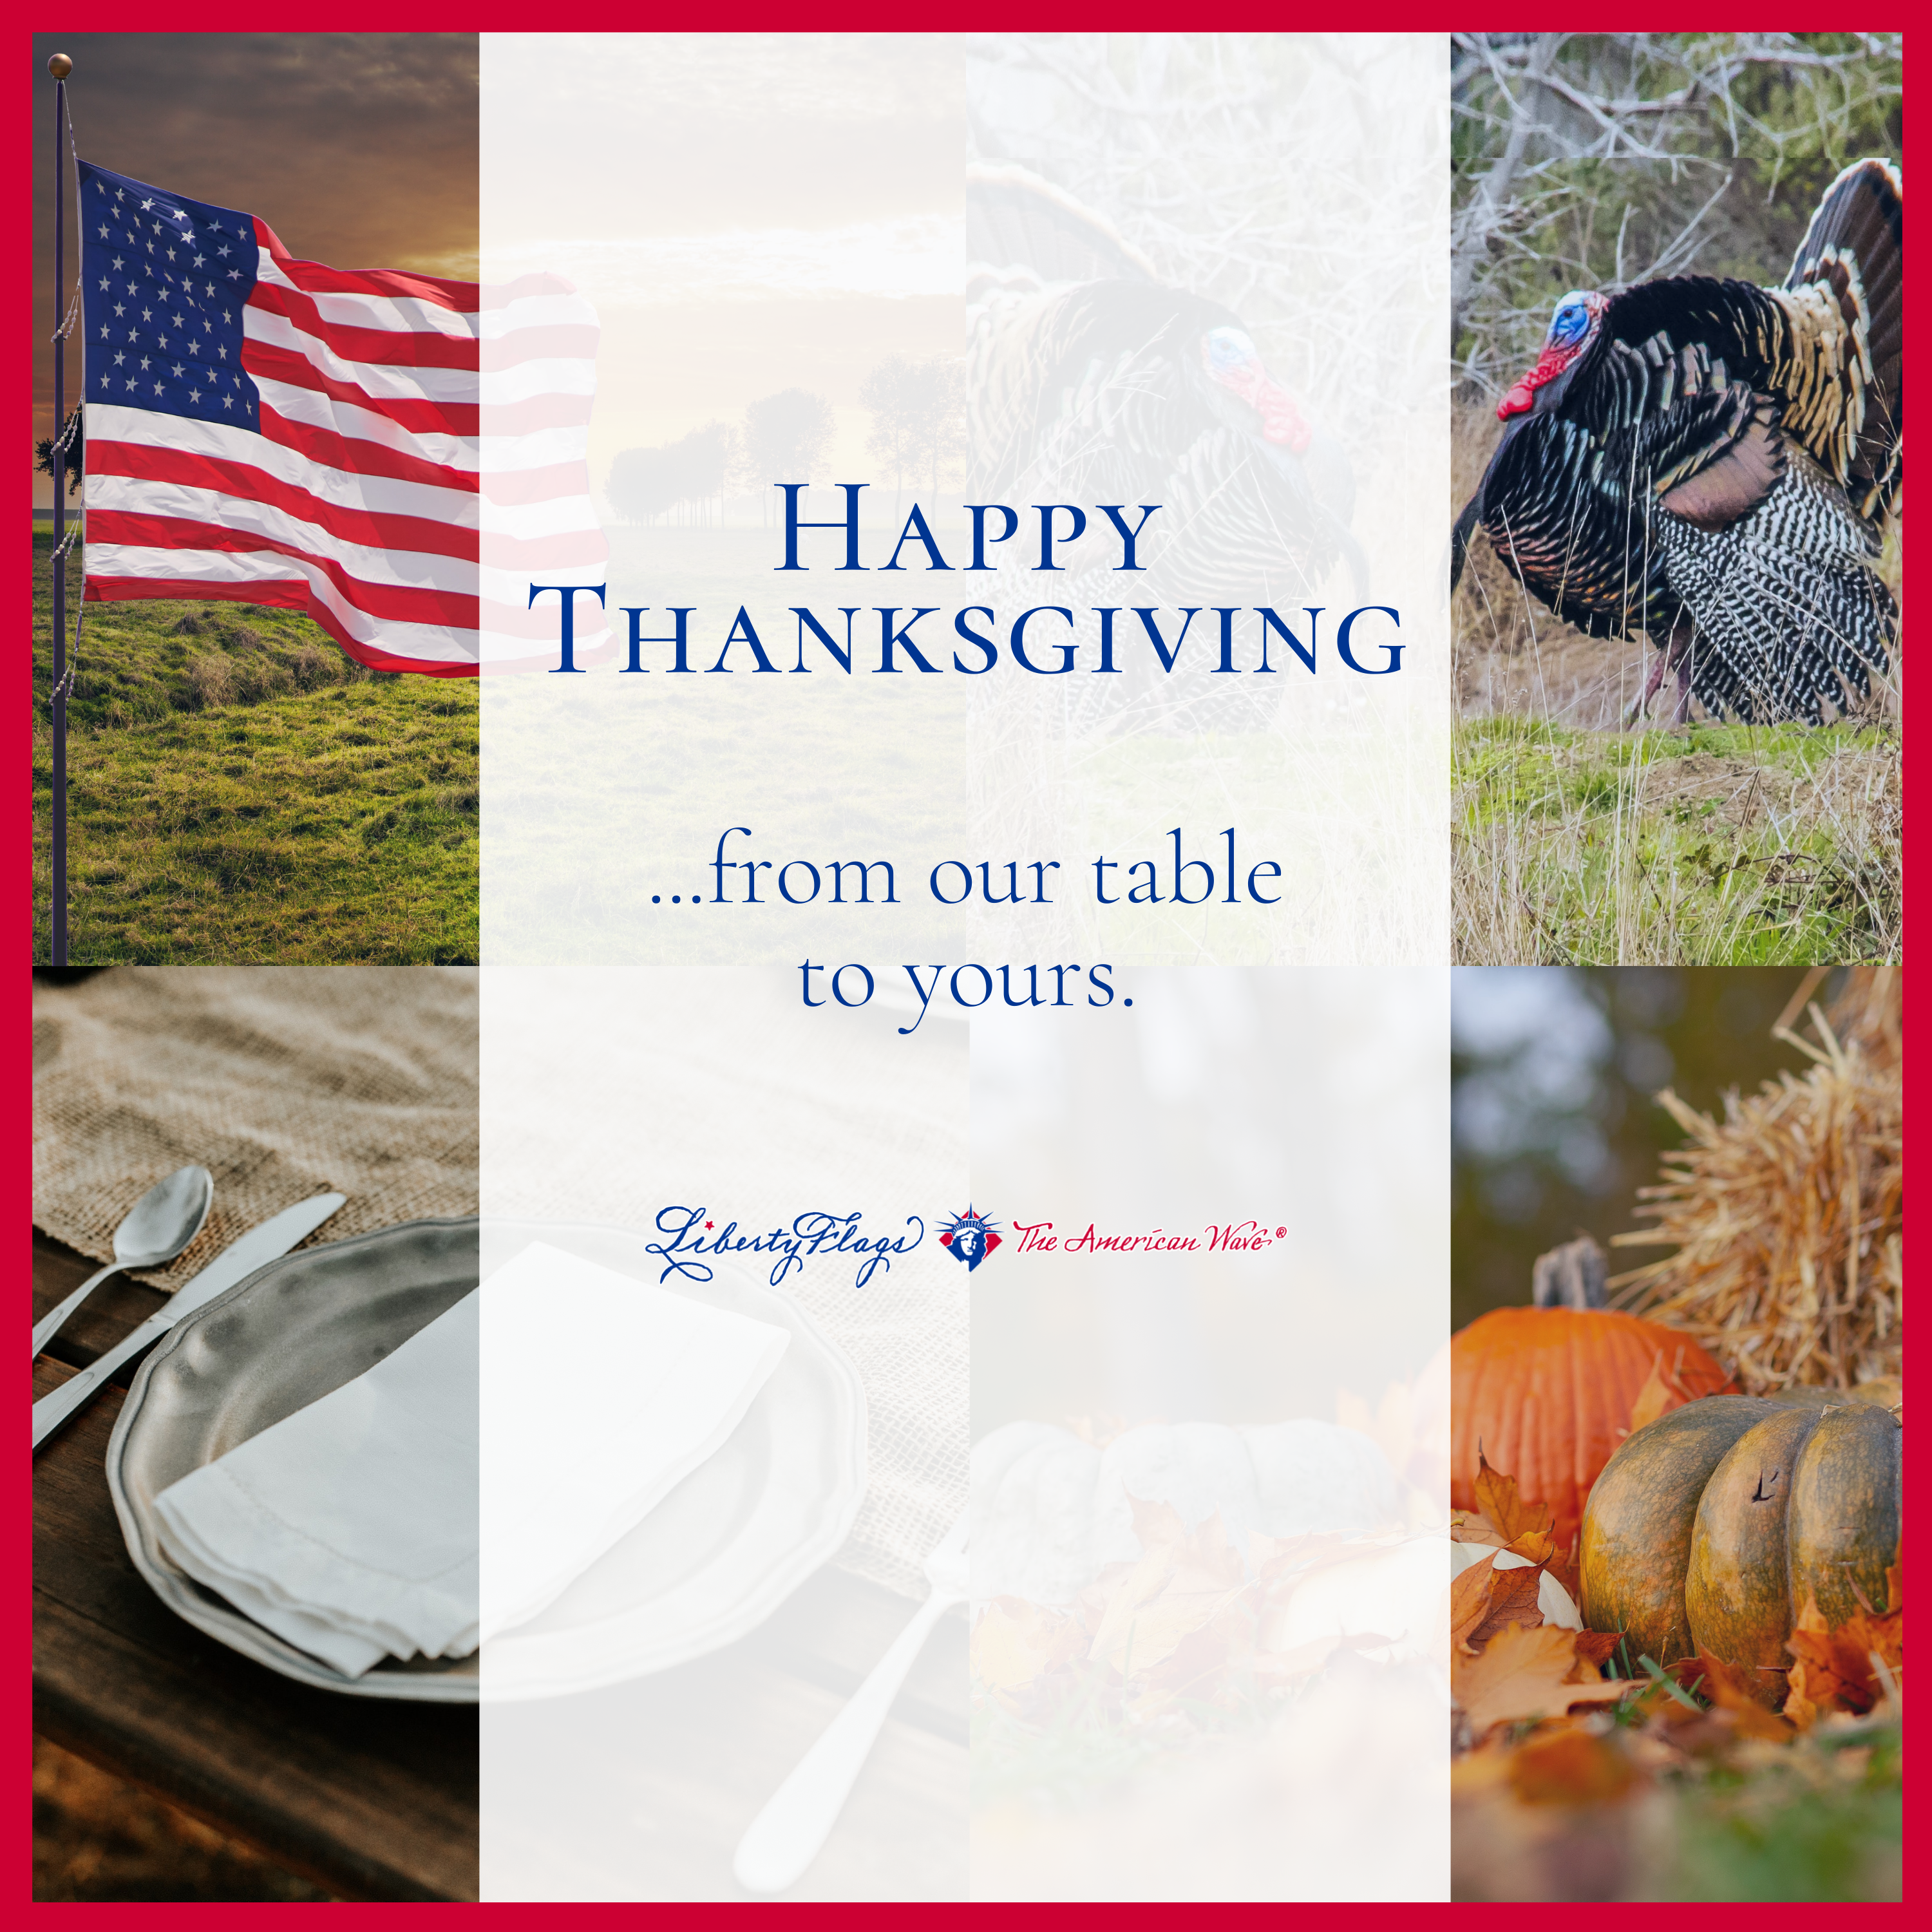 Thanksgiving with LIBERTY FLAGS, The American Wave®